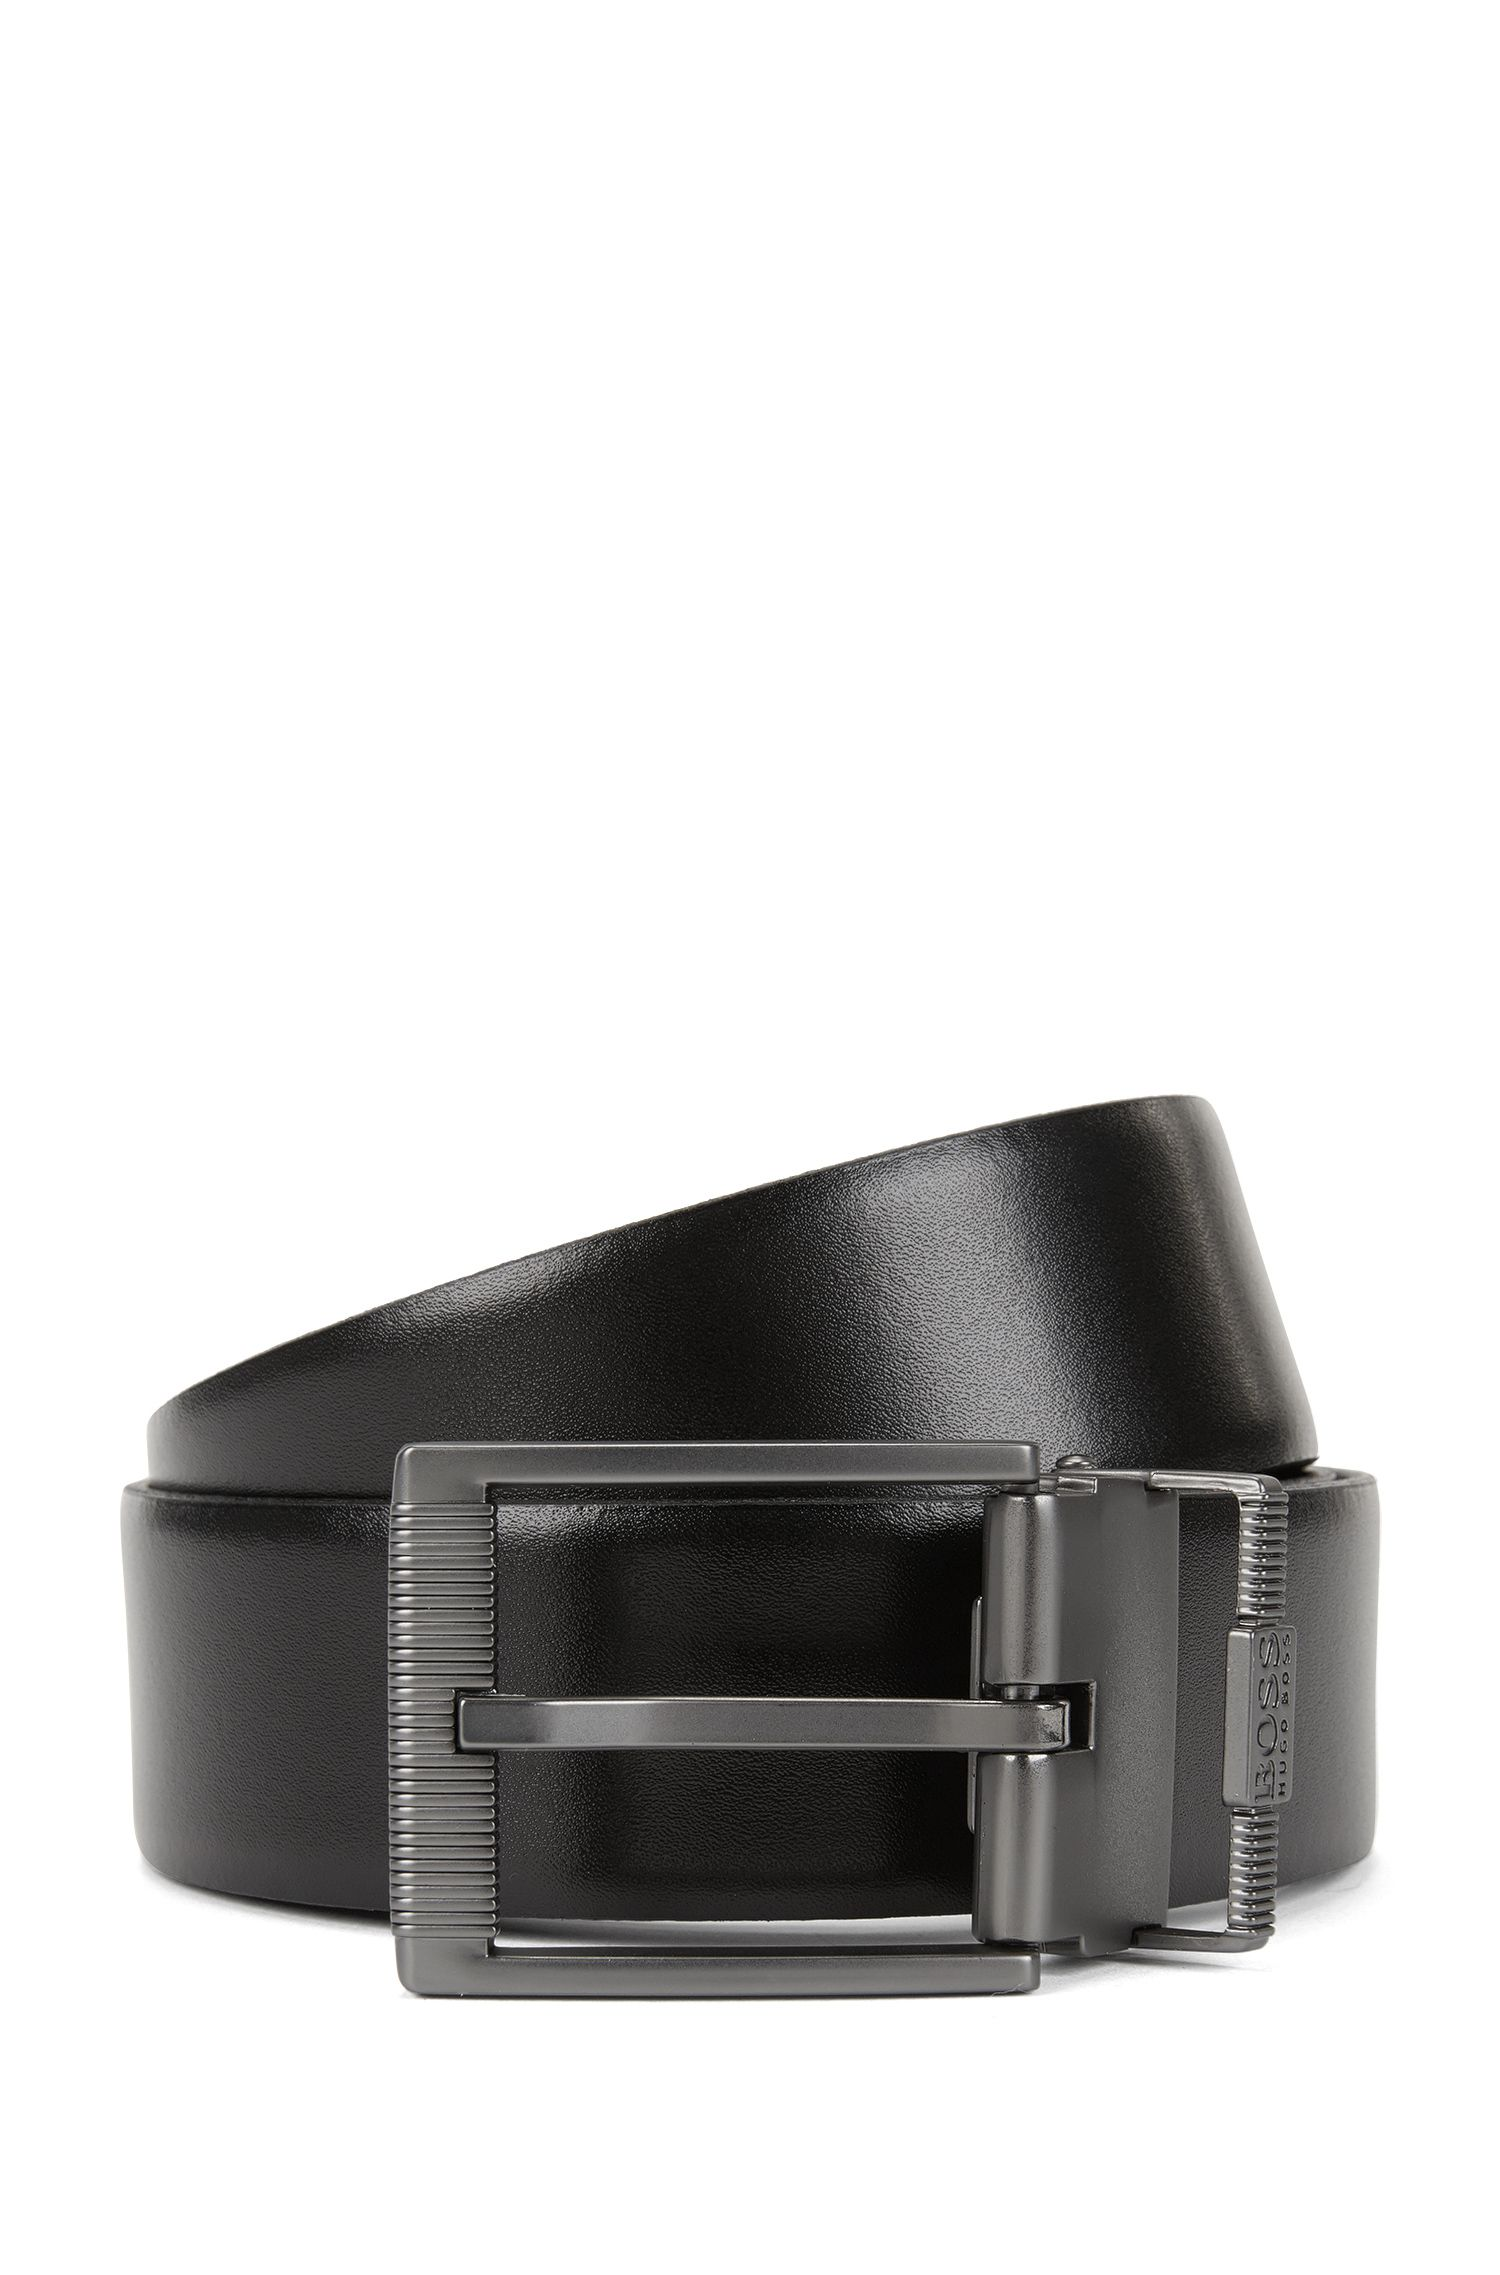 Reversible smooth and structured leather belt with matt gunmetal double buckle